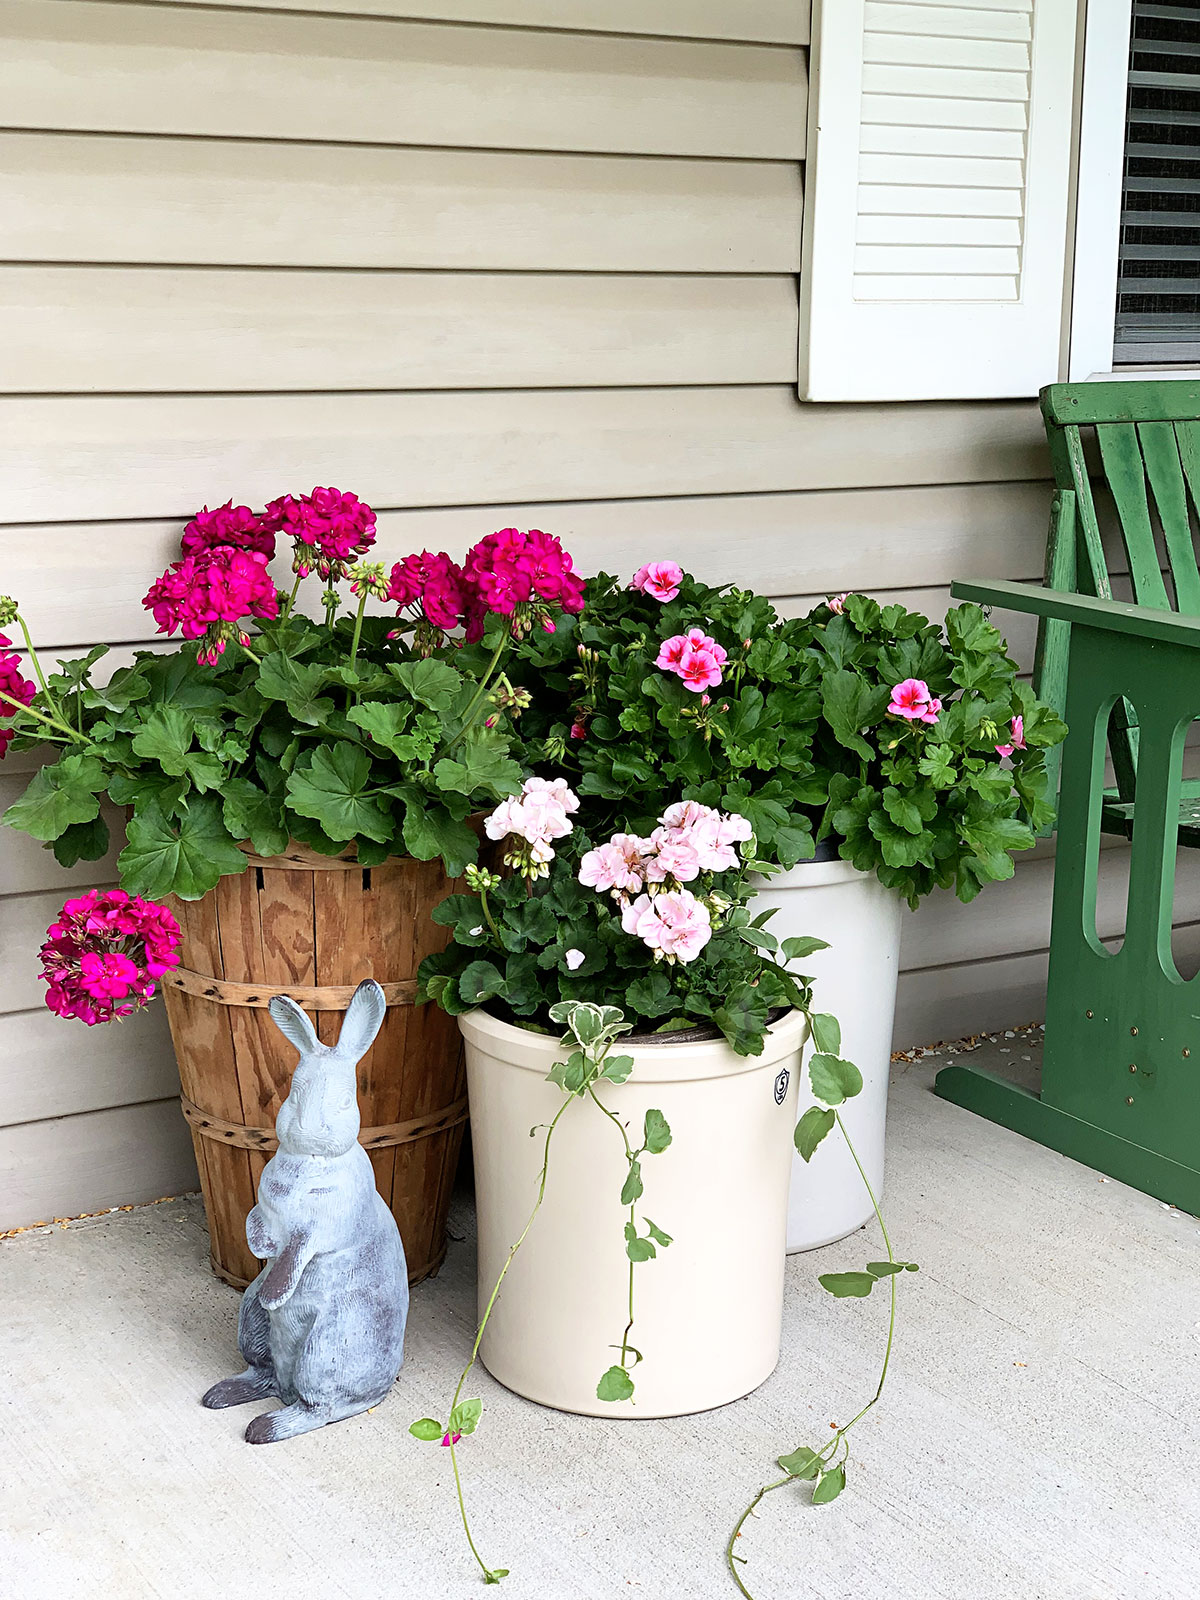 Pink geraniums in crocks and peach basket on the porch.